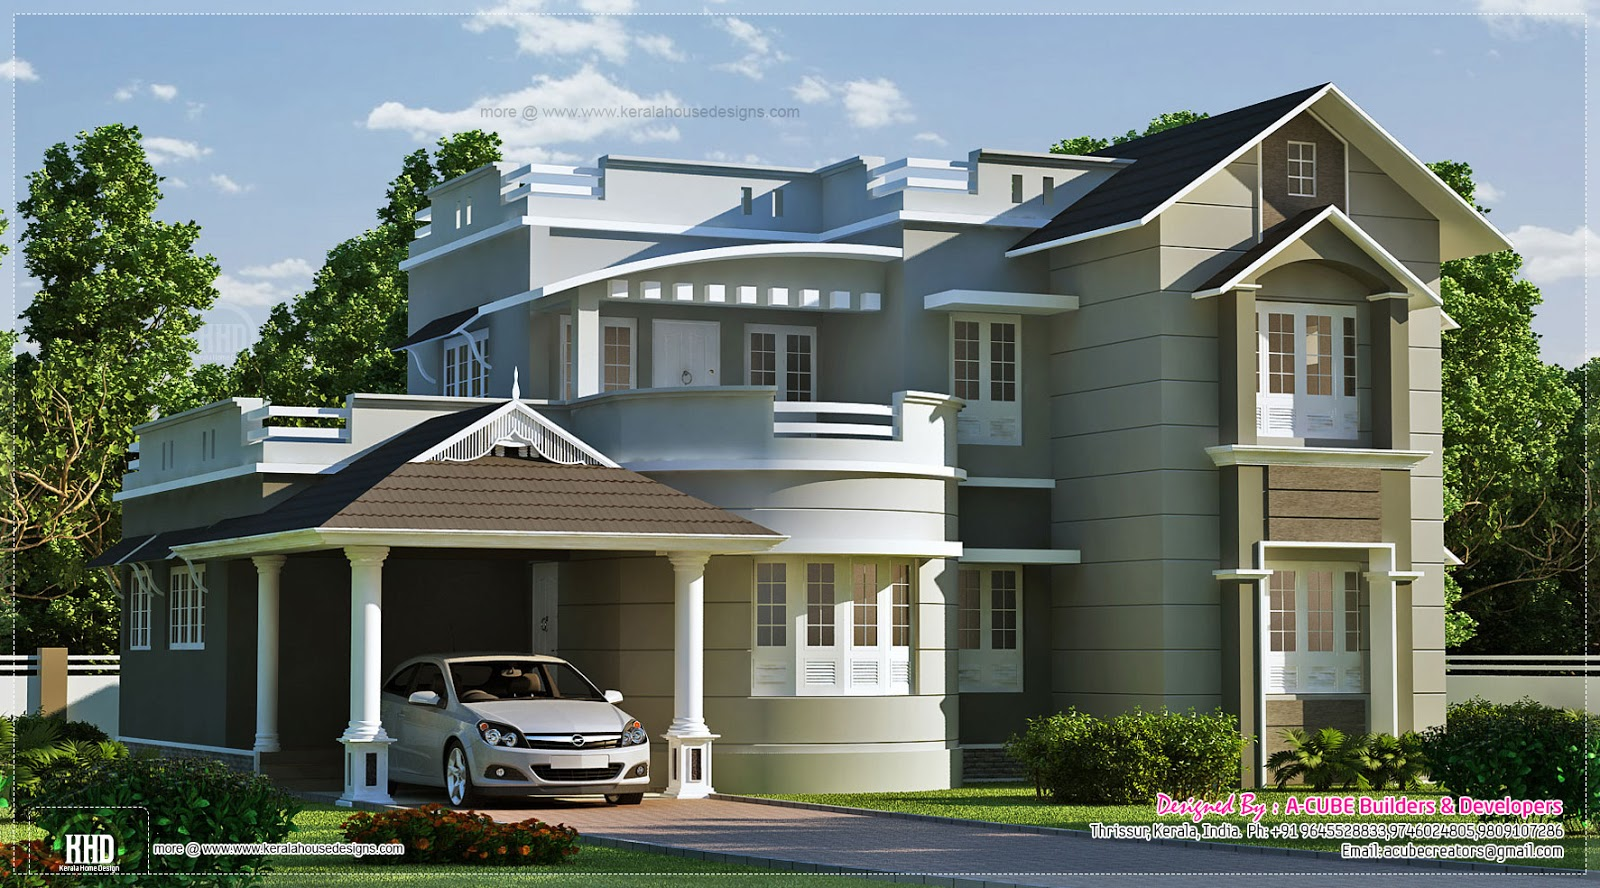 New style home exterior in 1800 kerala home for Home exterior design ideas photos